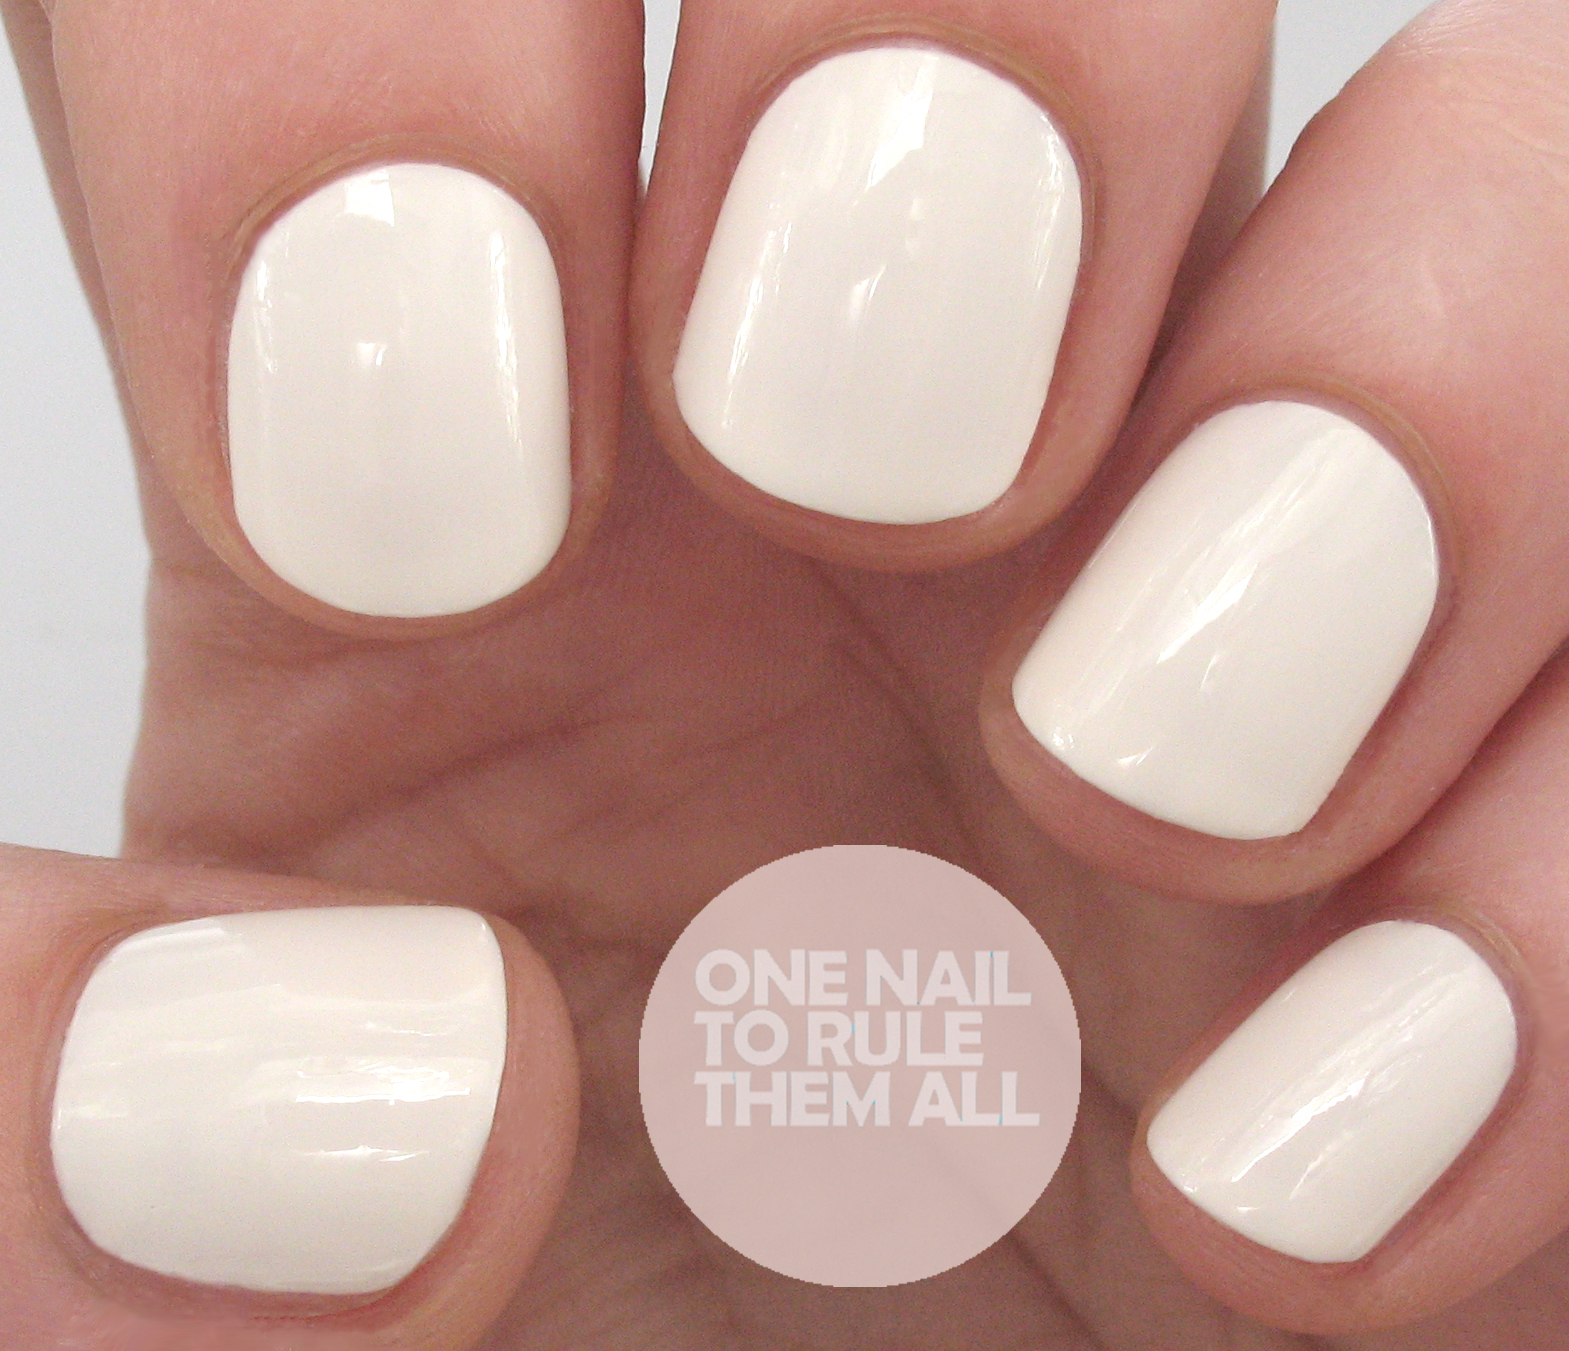 One Nail To Rule Them All Barry M Nail Art Pens Review: One Nail To Rule Them All: Barry M Summer 2014 Gelly Nail